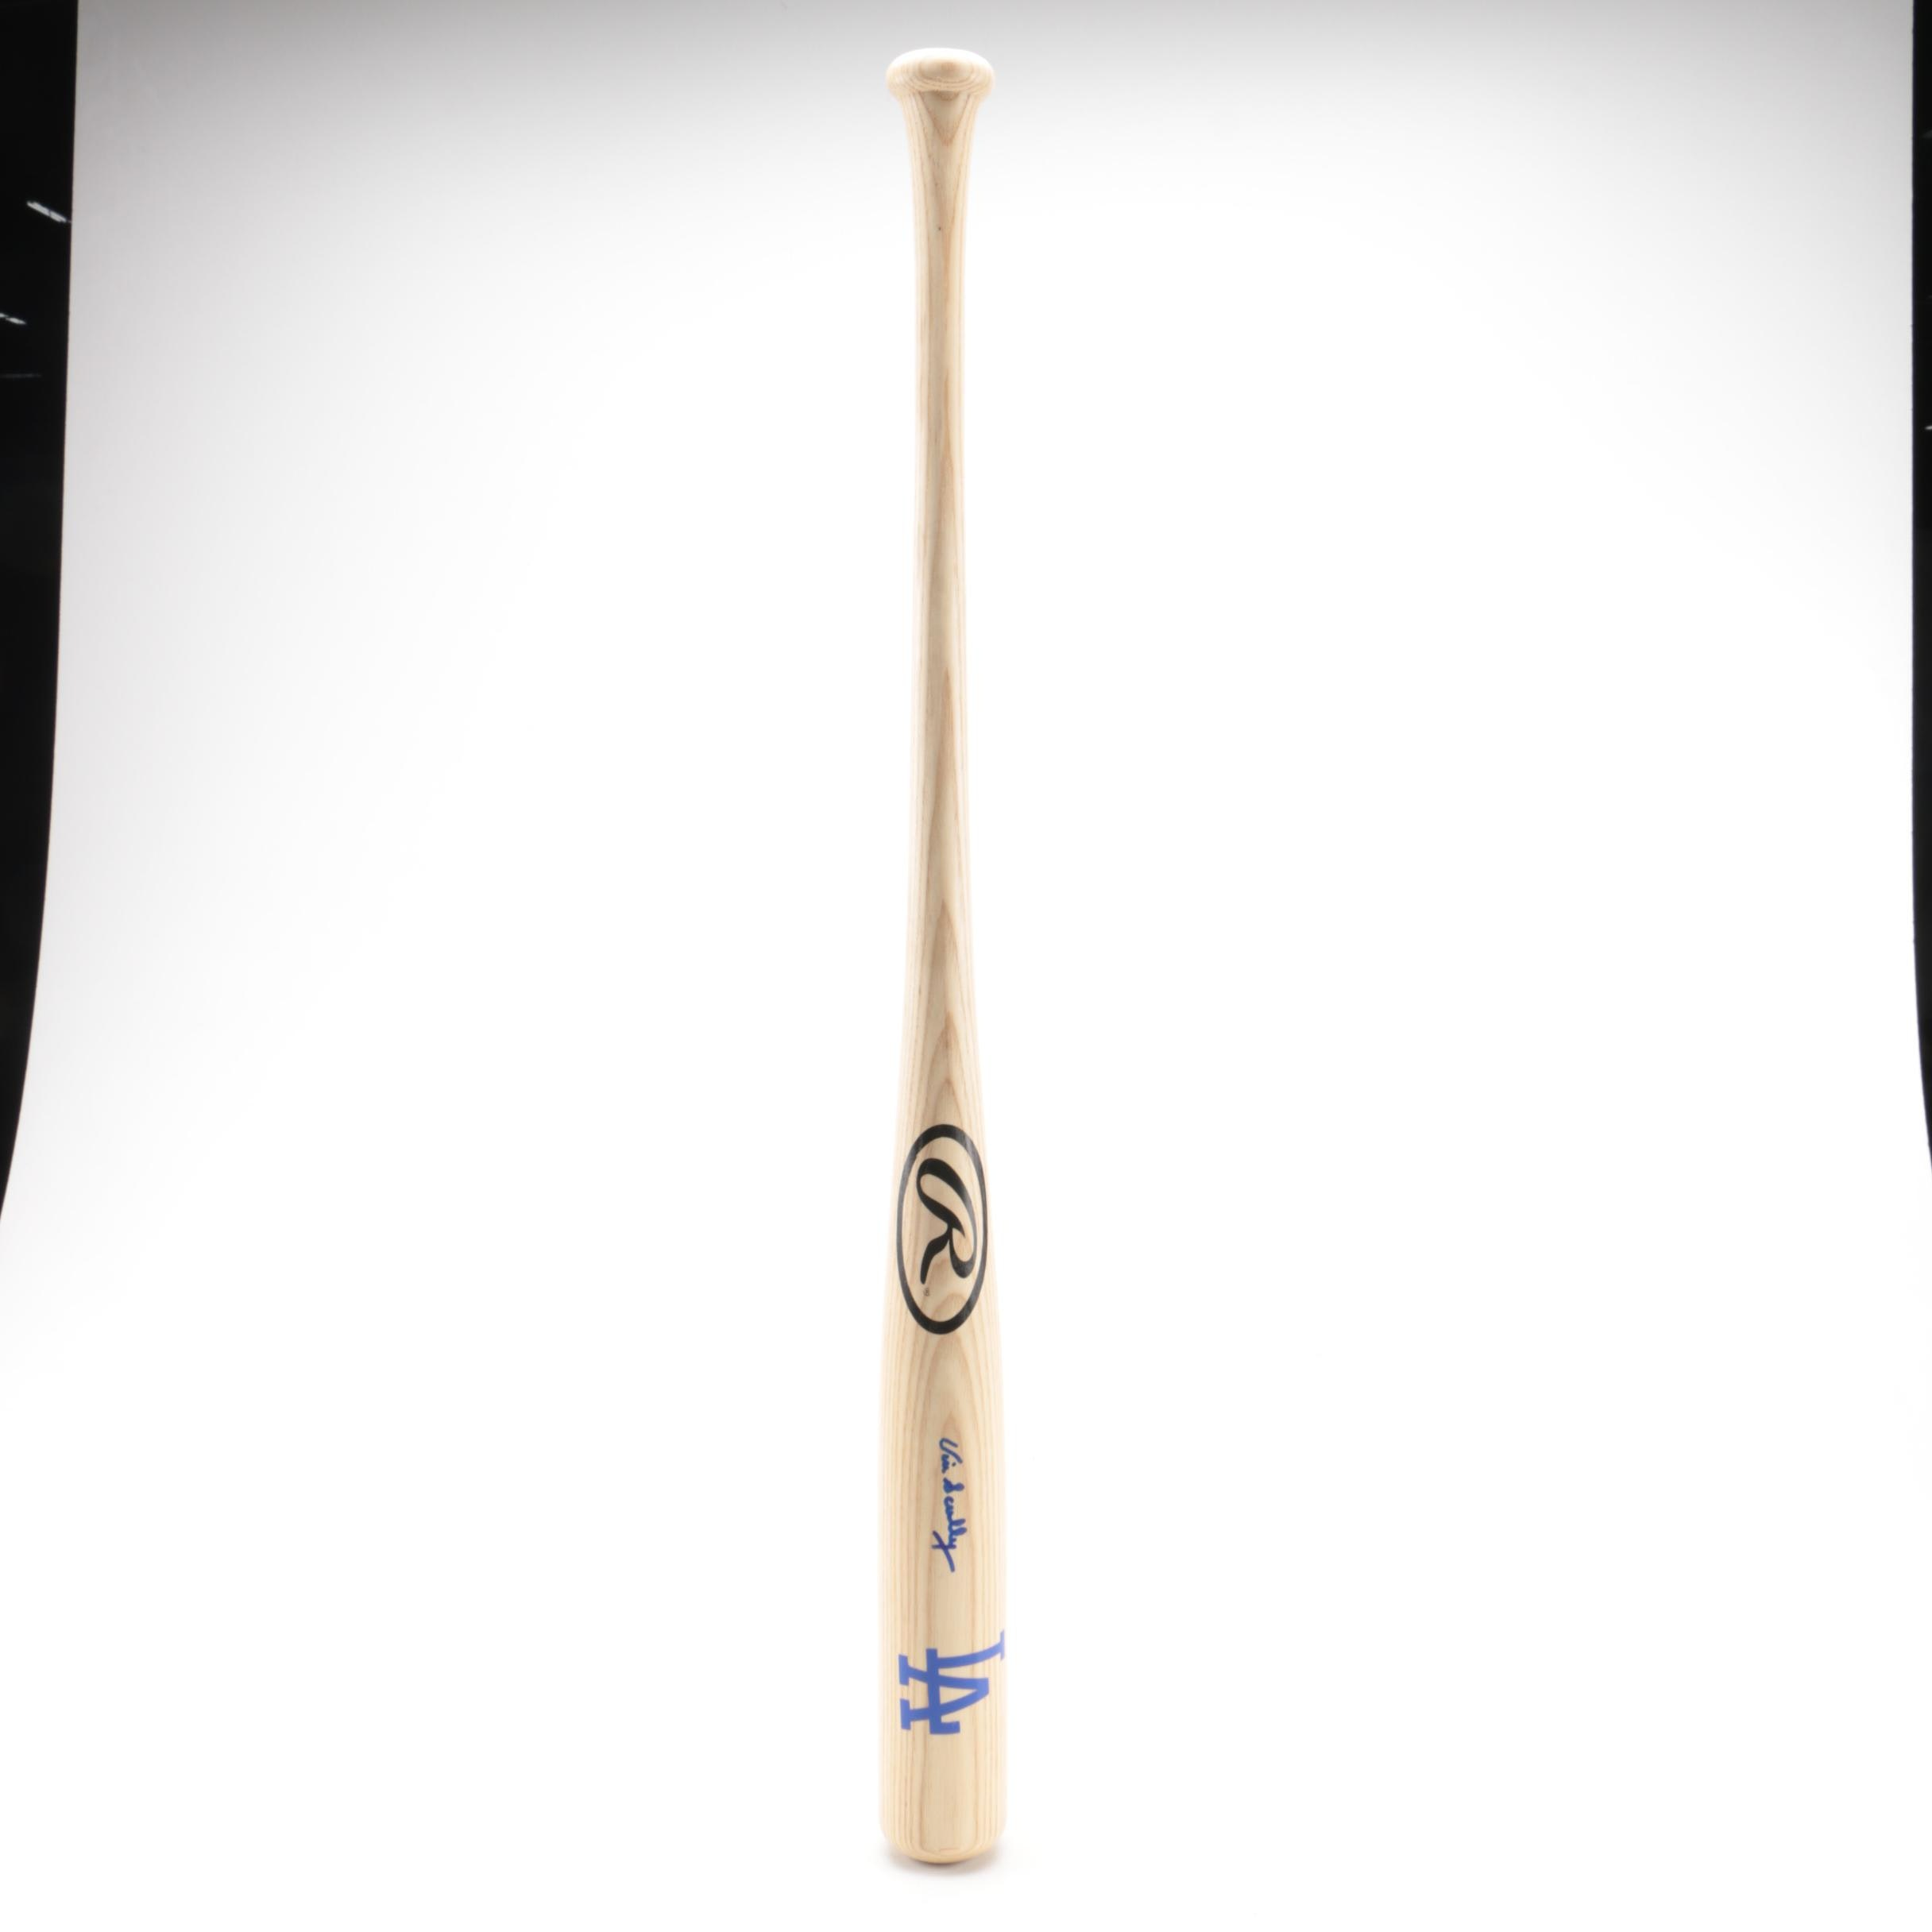 Vin Scully Autographed Rawlings Los Angeles Dodgers Baseball Bat